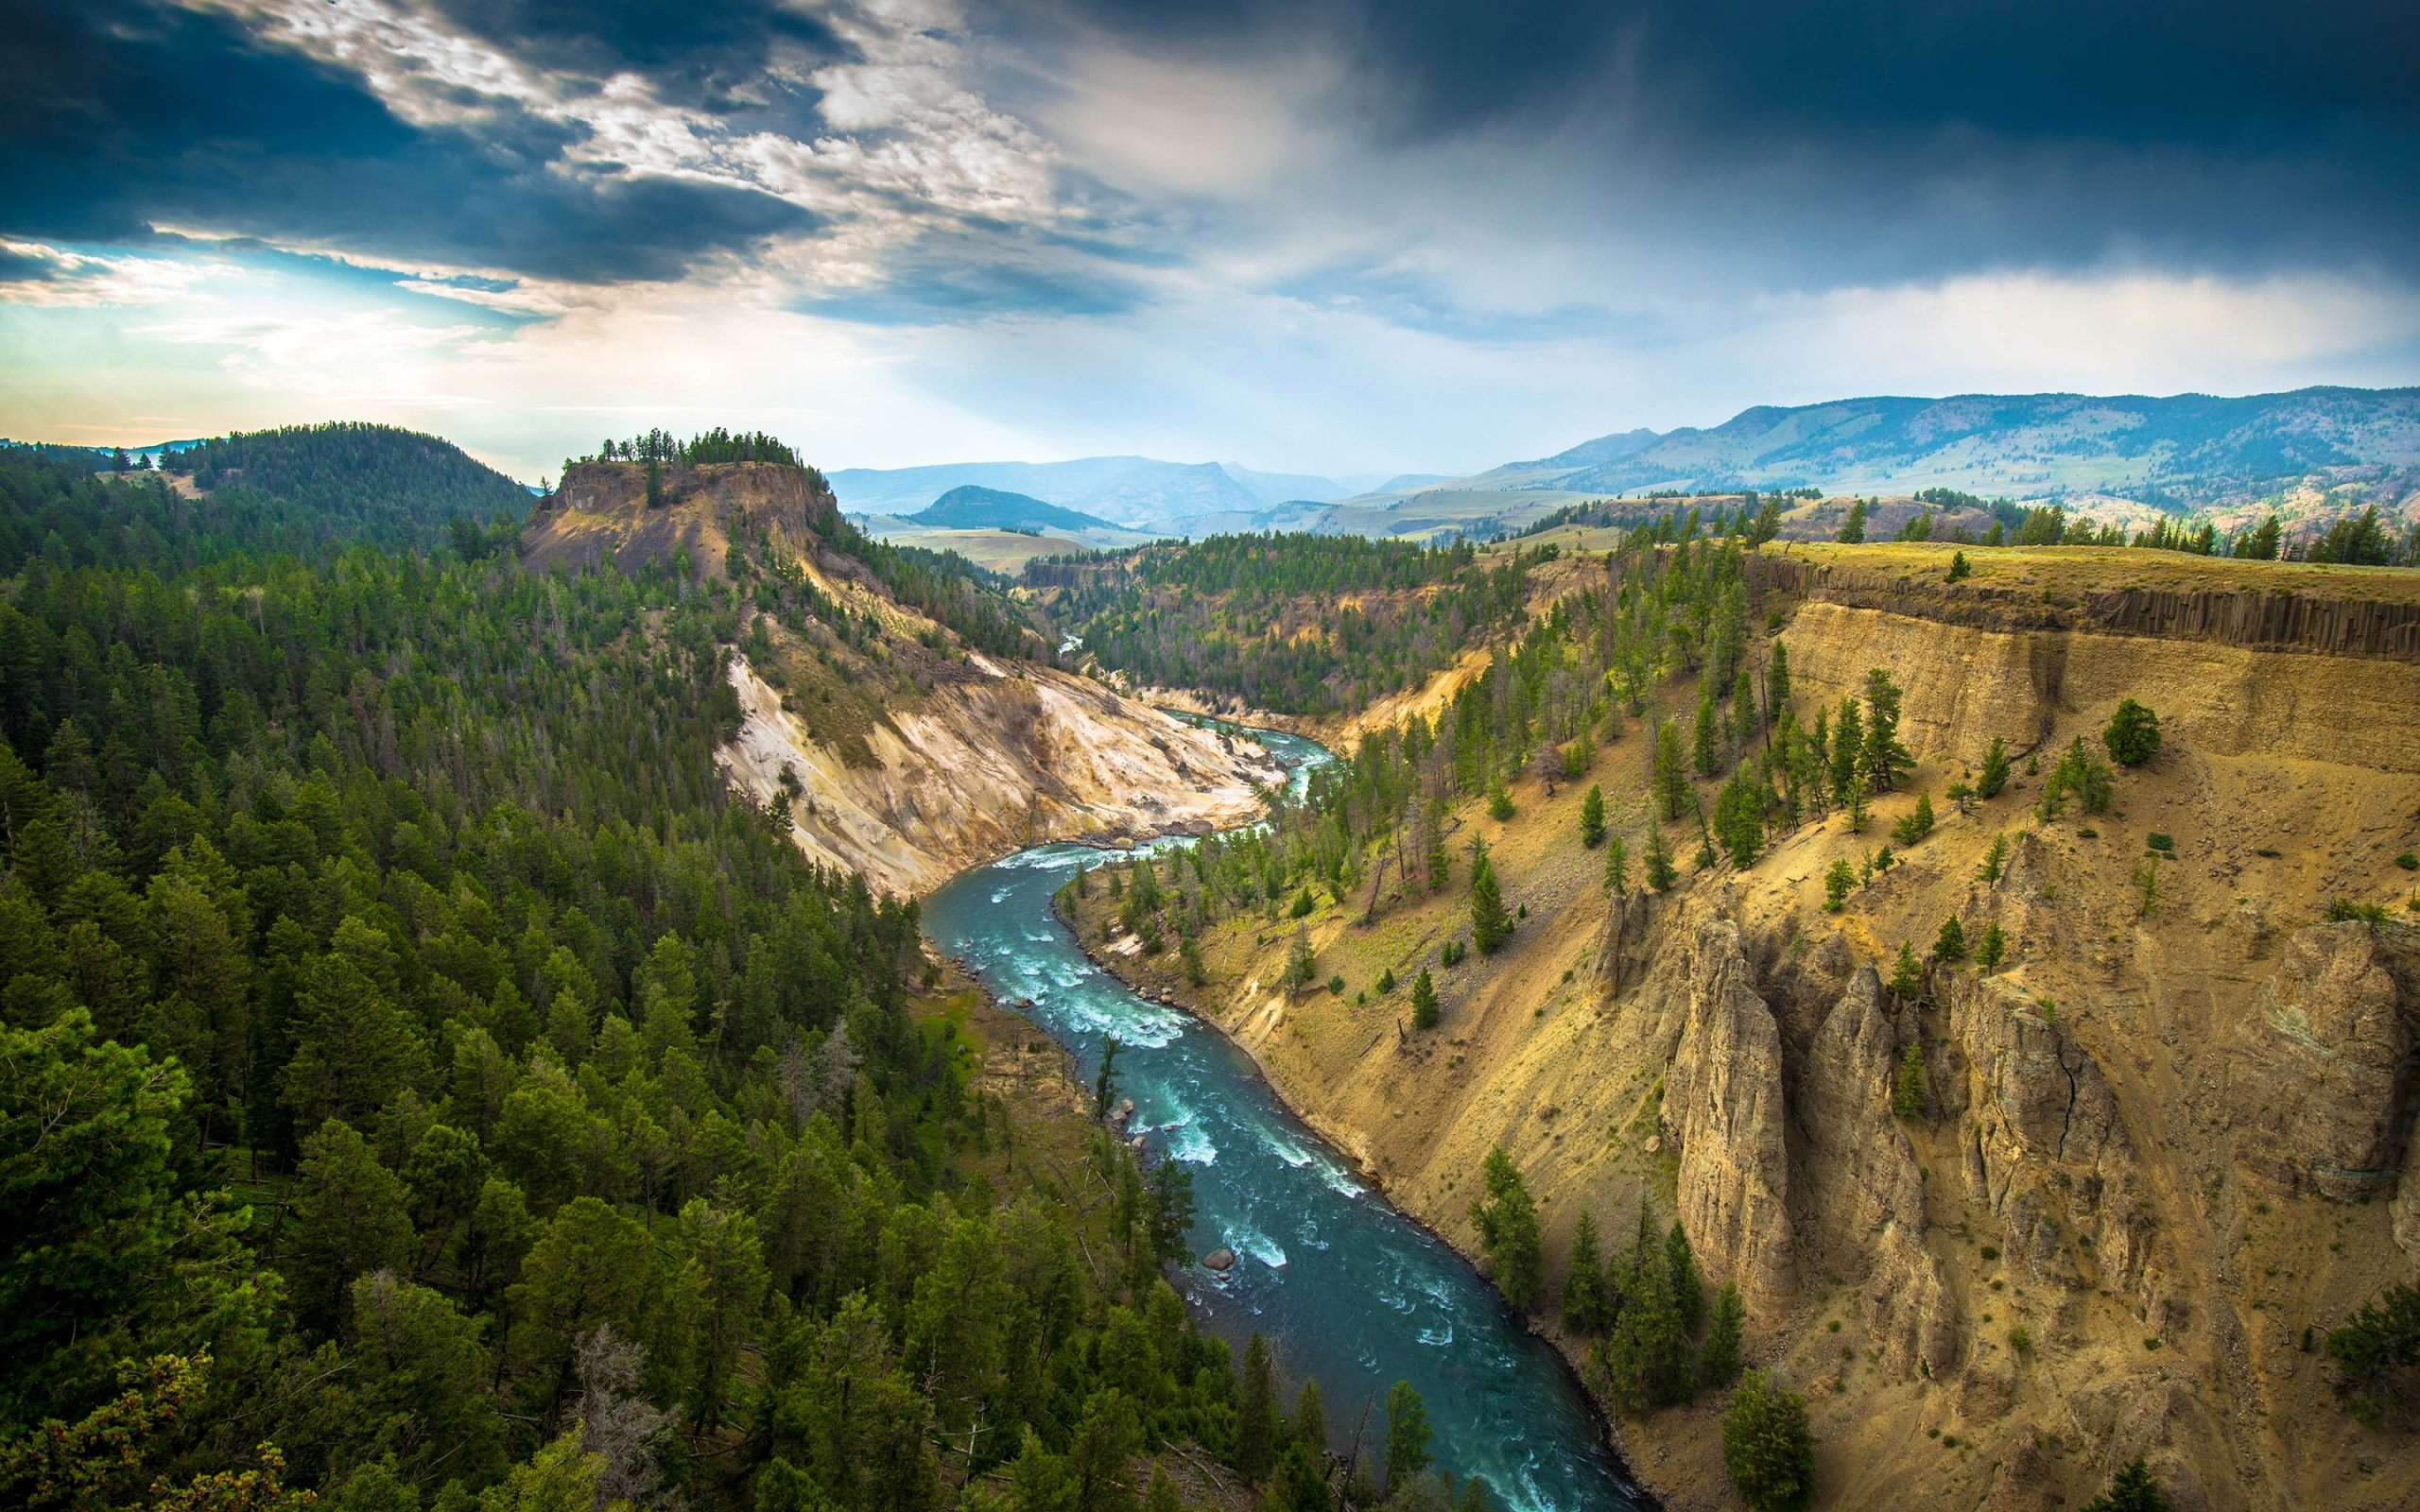 Yellowstone National Park Wallpaper For Desktop Mobile 2560x1600